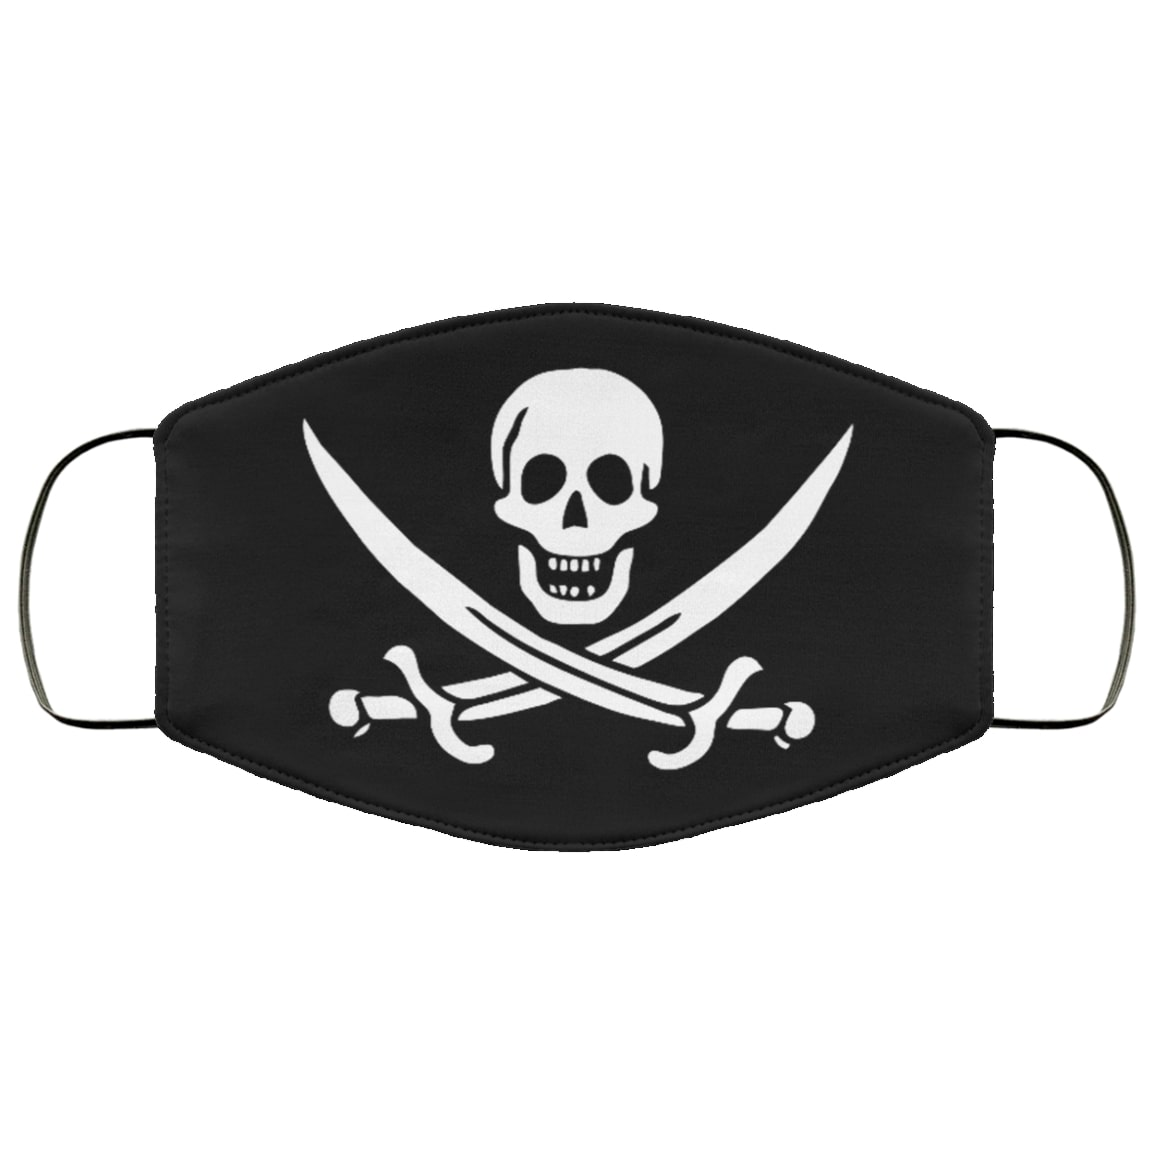 Jolly roger all over printed face mask 4